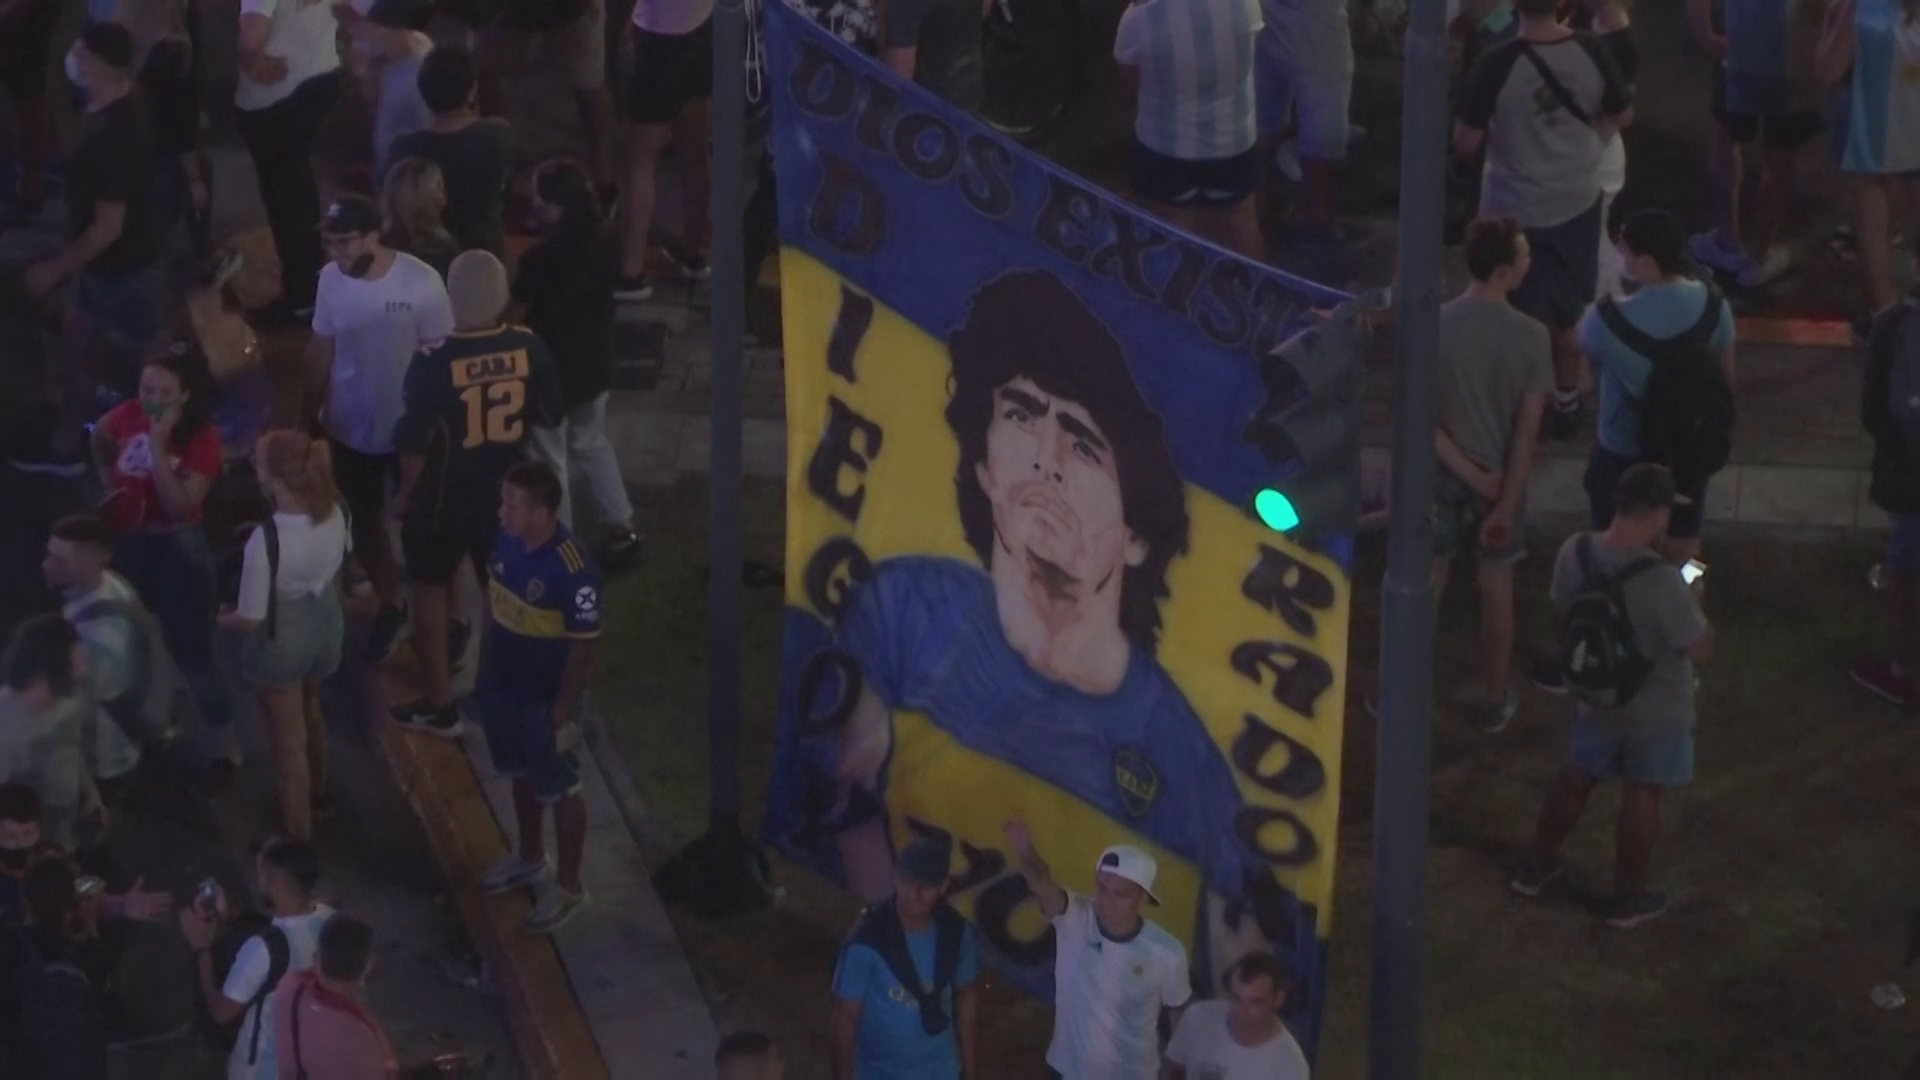 uk.news.yahoo.com: Diego Maradona: Thousands of Fans Gather in Buenos Aires